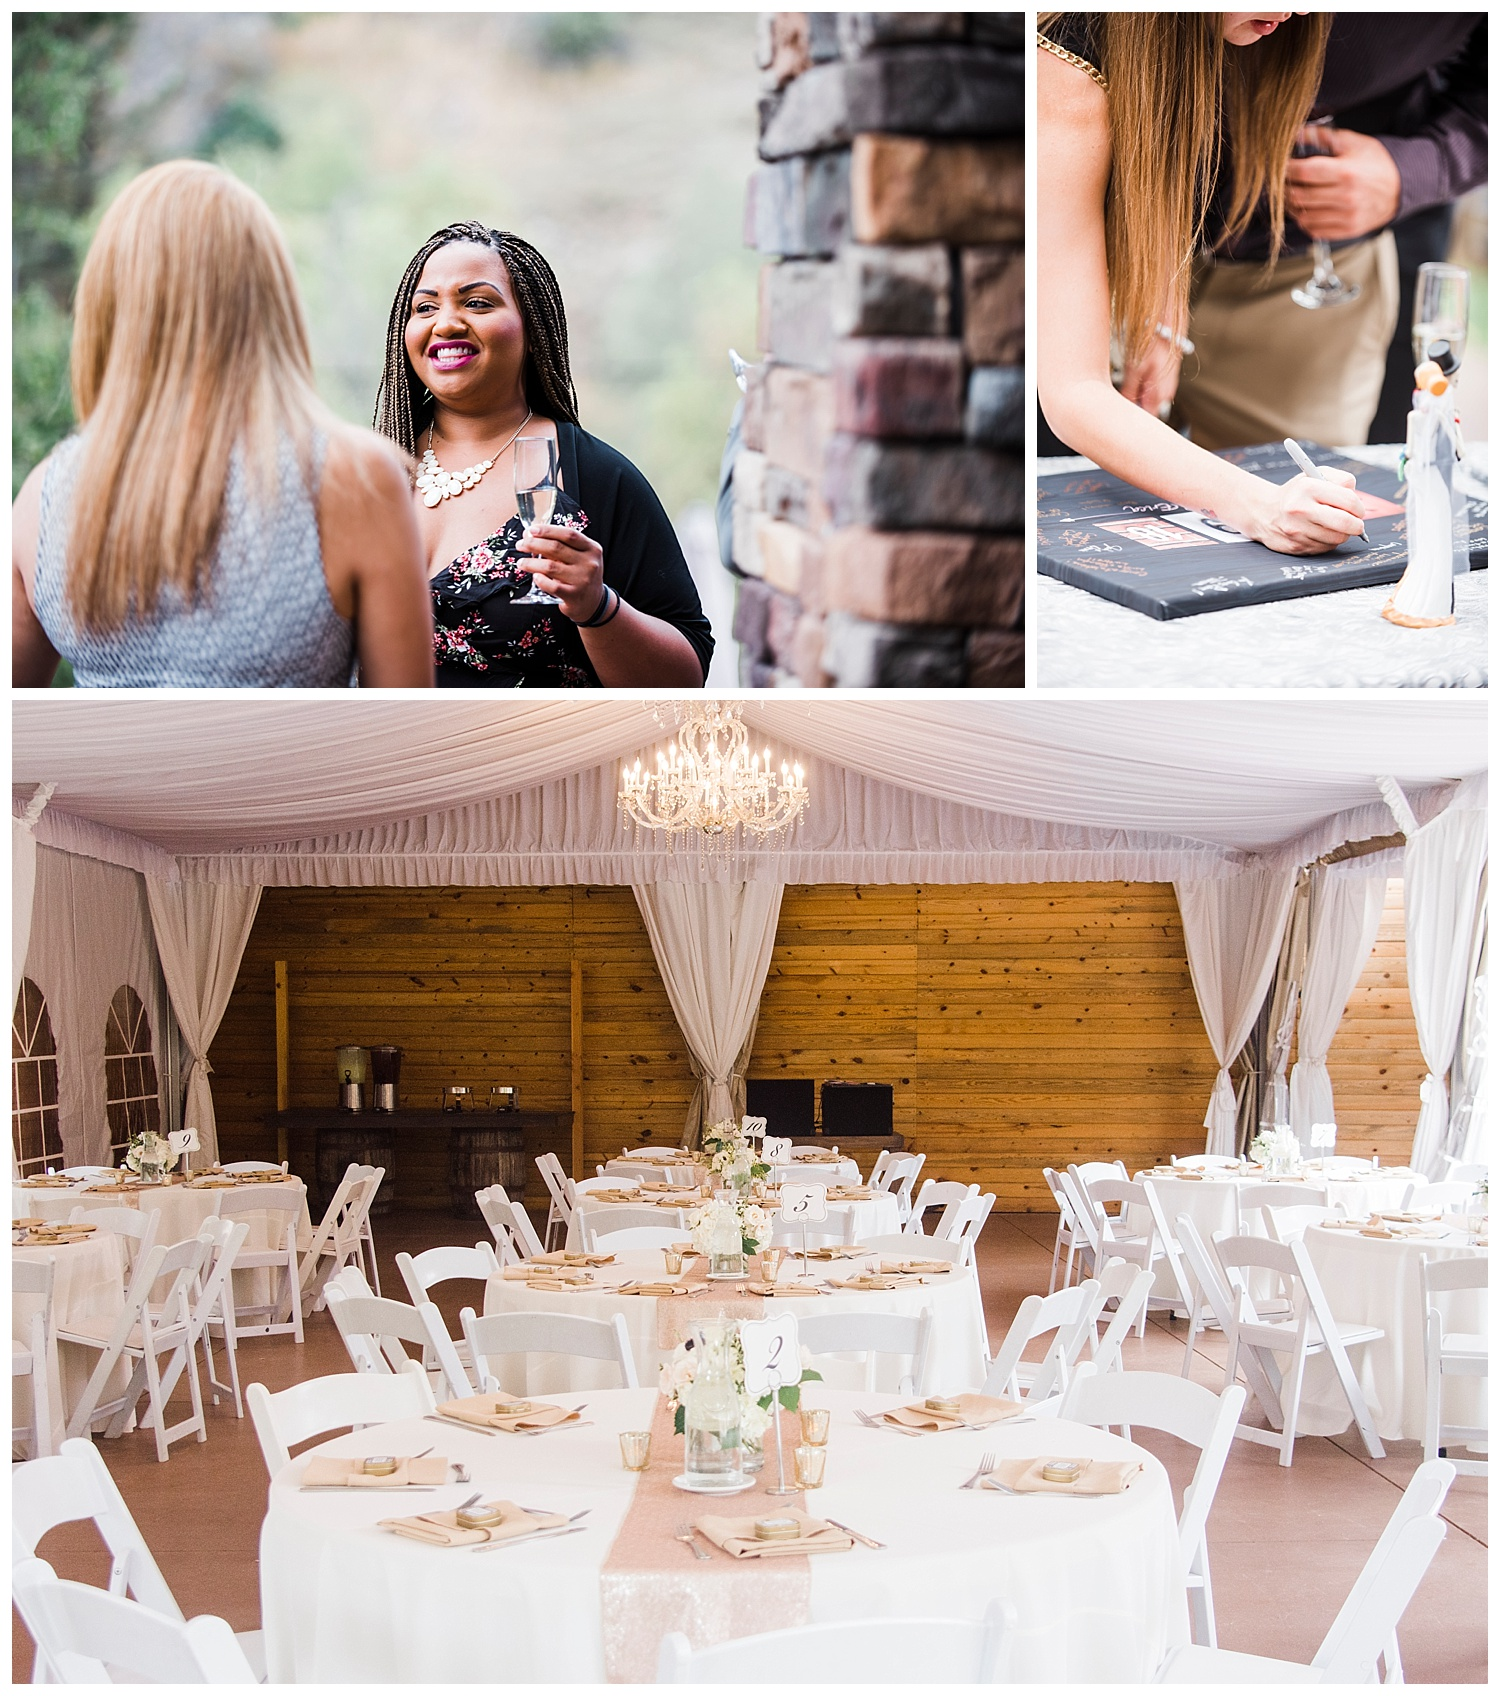 Wedgewood_Boulder_Creek_Wedding_Venue_Colorado_Photographer_Apollo_Fields_026.jpg